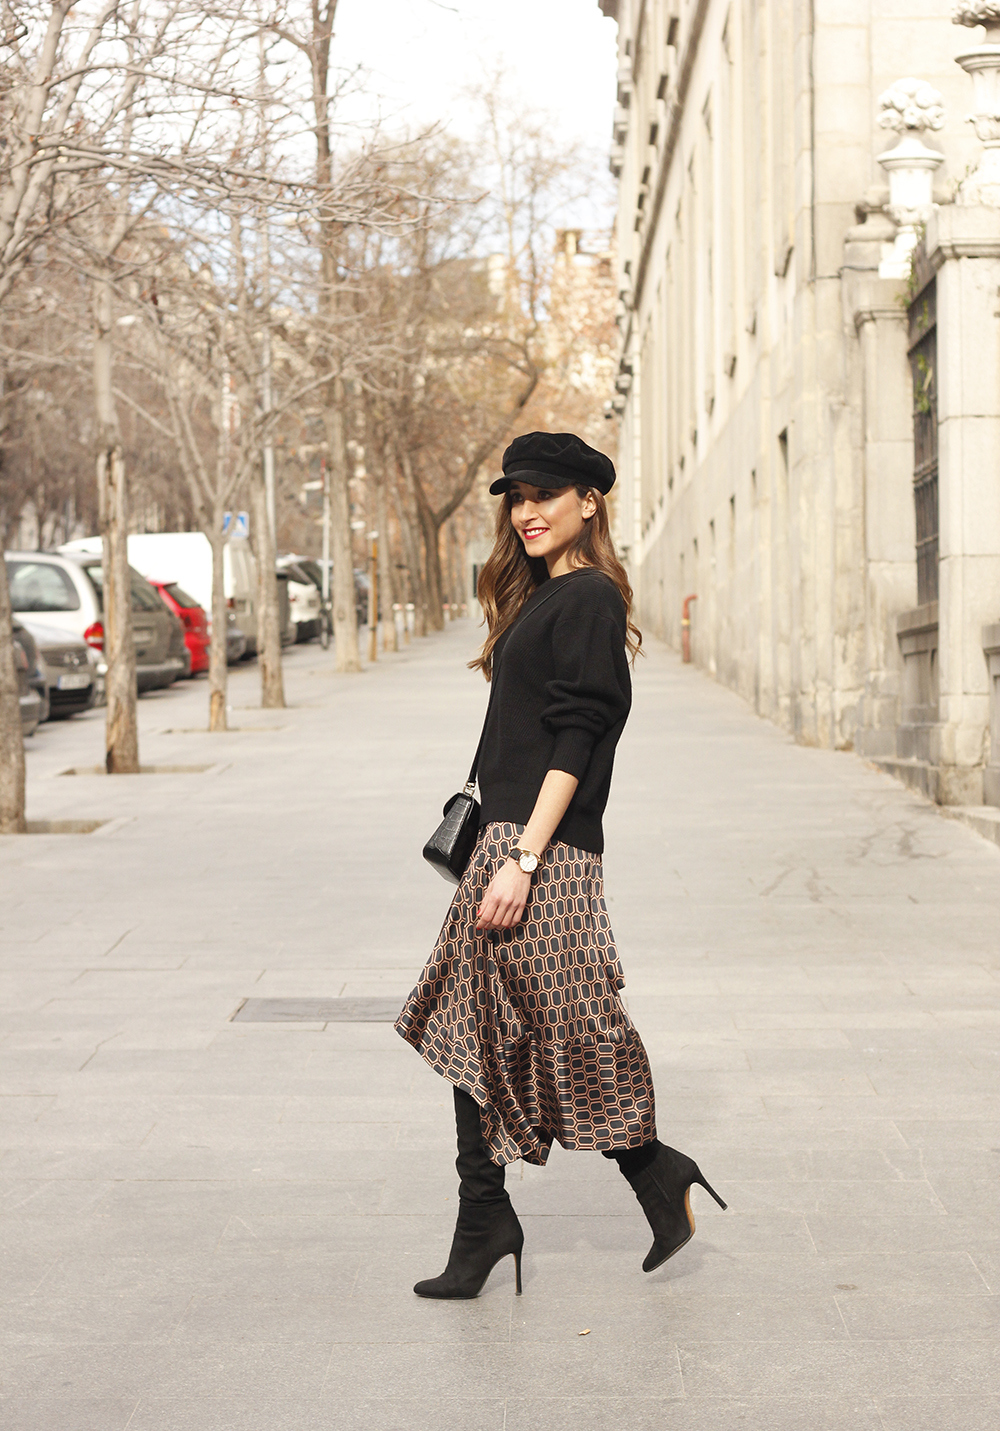 Midi skirt geometrical print marc jacobs watch over the knee boots givenchy bag winter outfit street style08